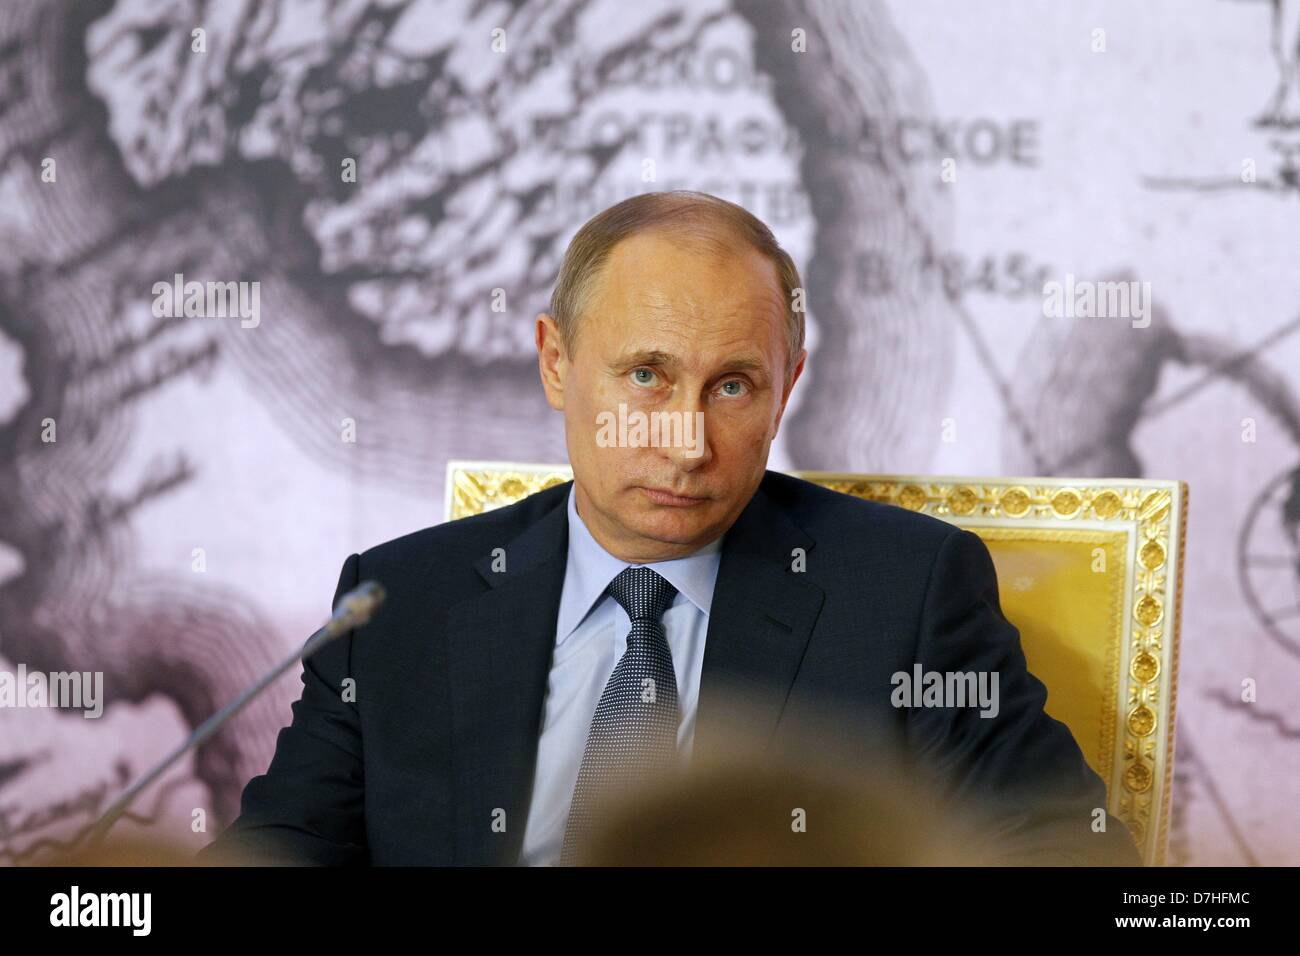 April 30, 2013 - St. Petersburg, Russia - April 30,2013. Pictured: President Vladimir Putin at the Russian Geographical Stock Photo